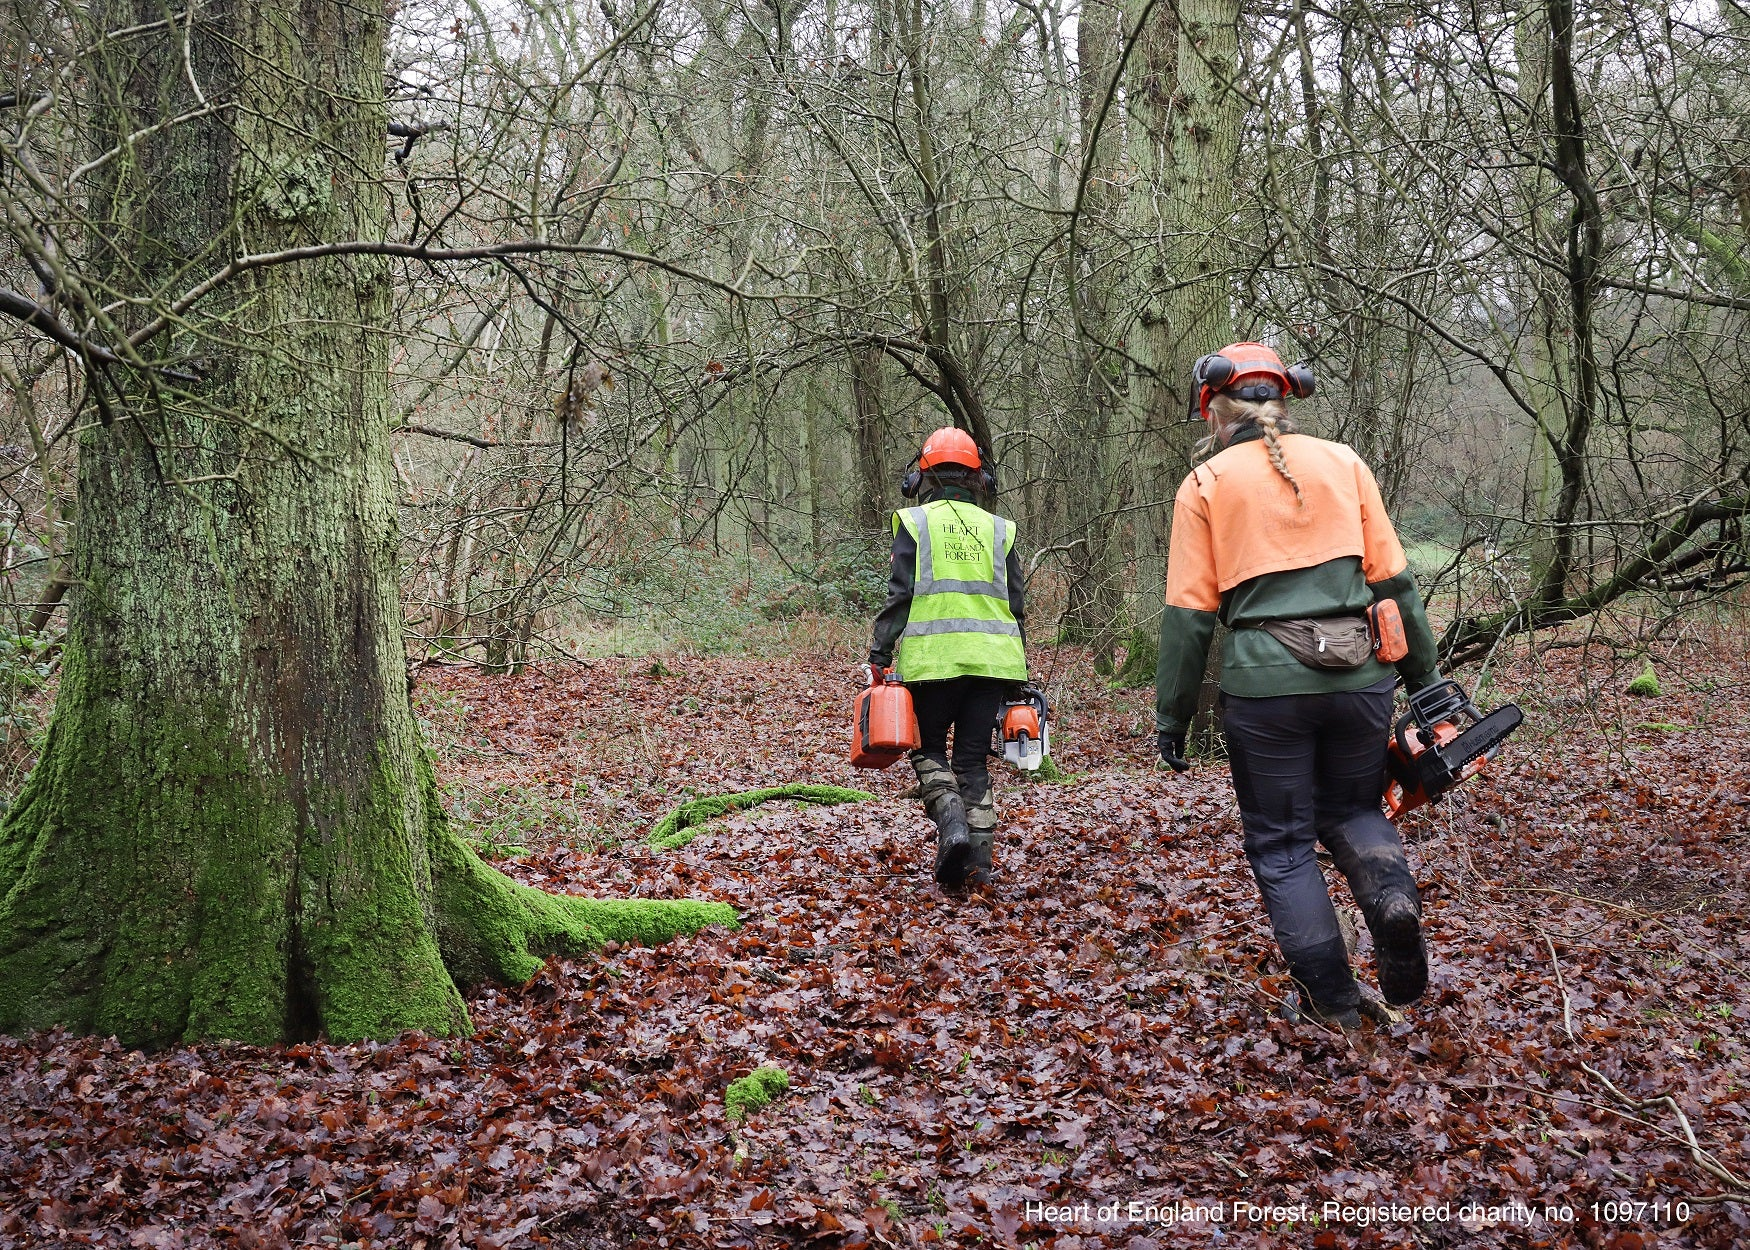 Triton partners with Heart of England Forest